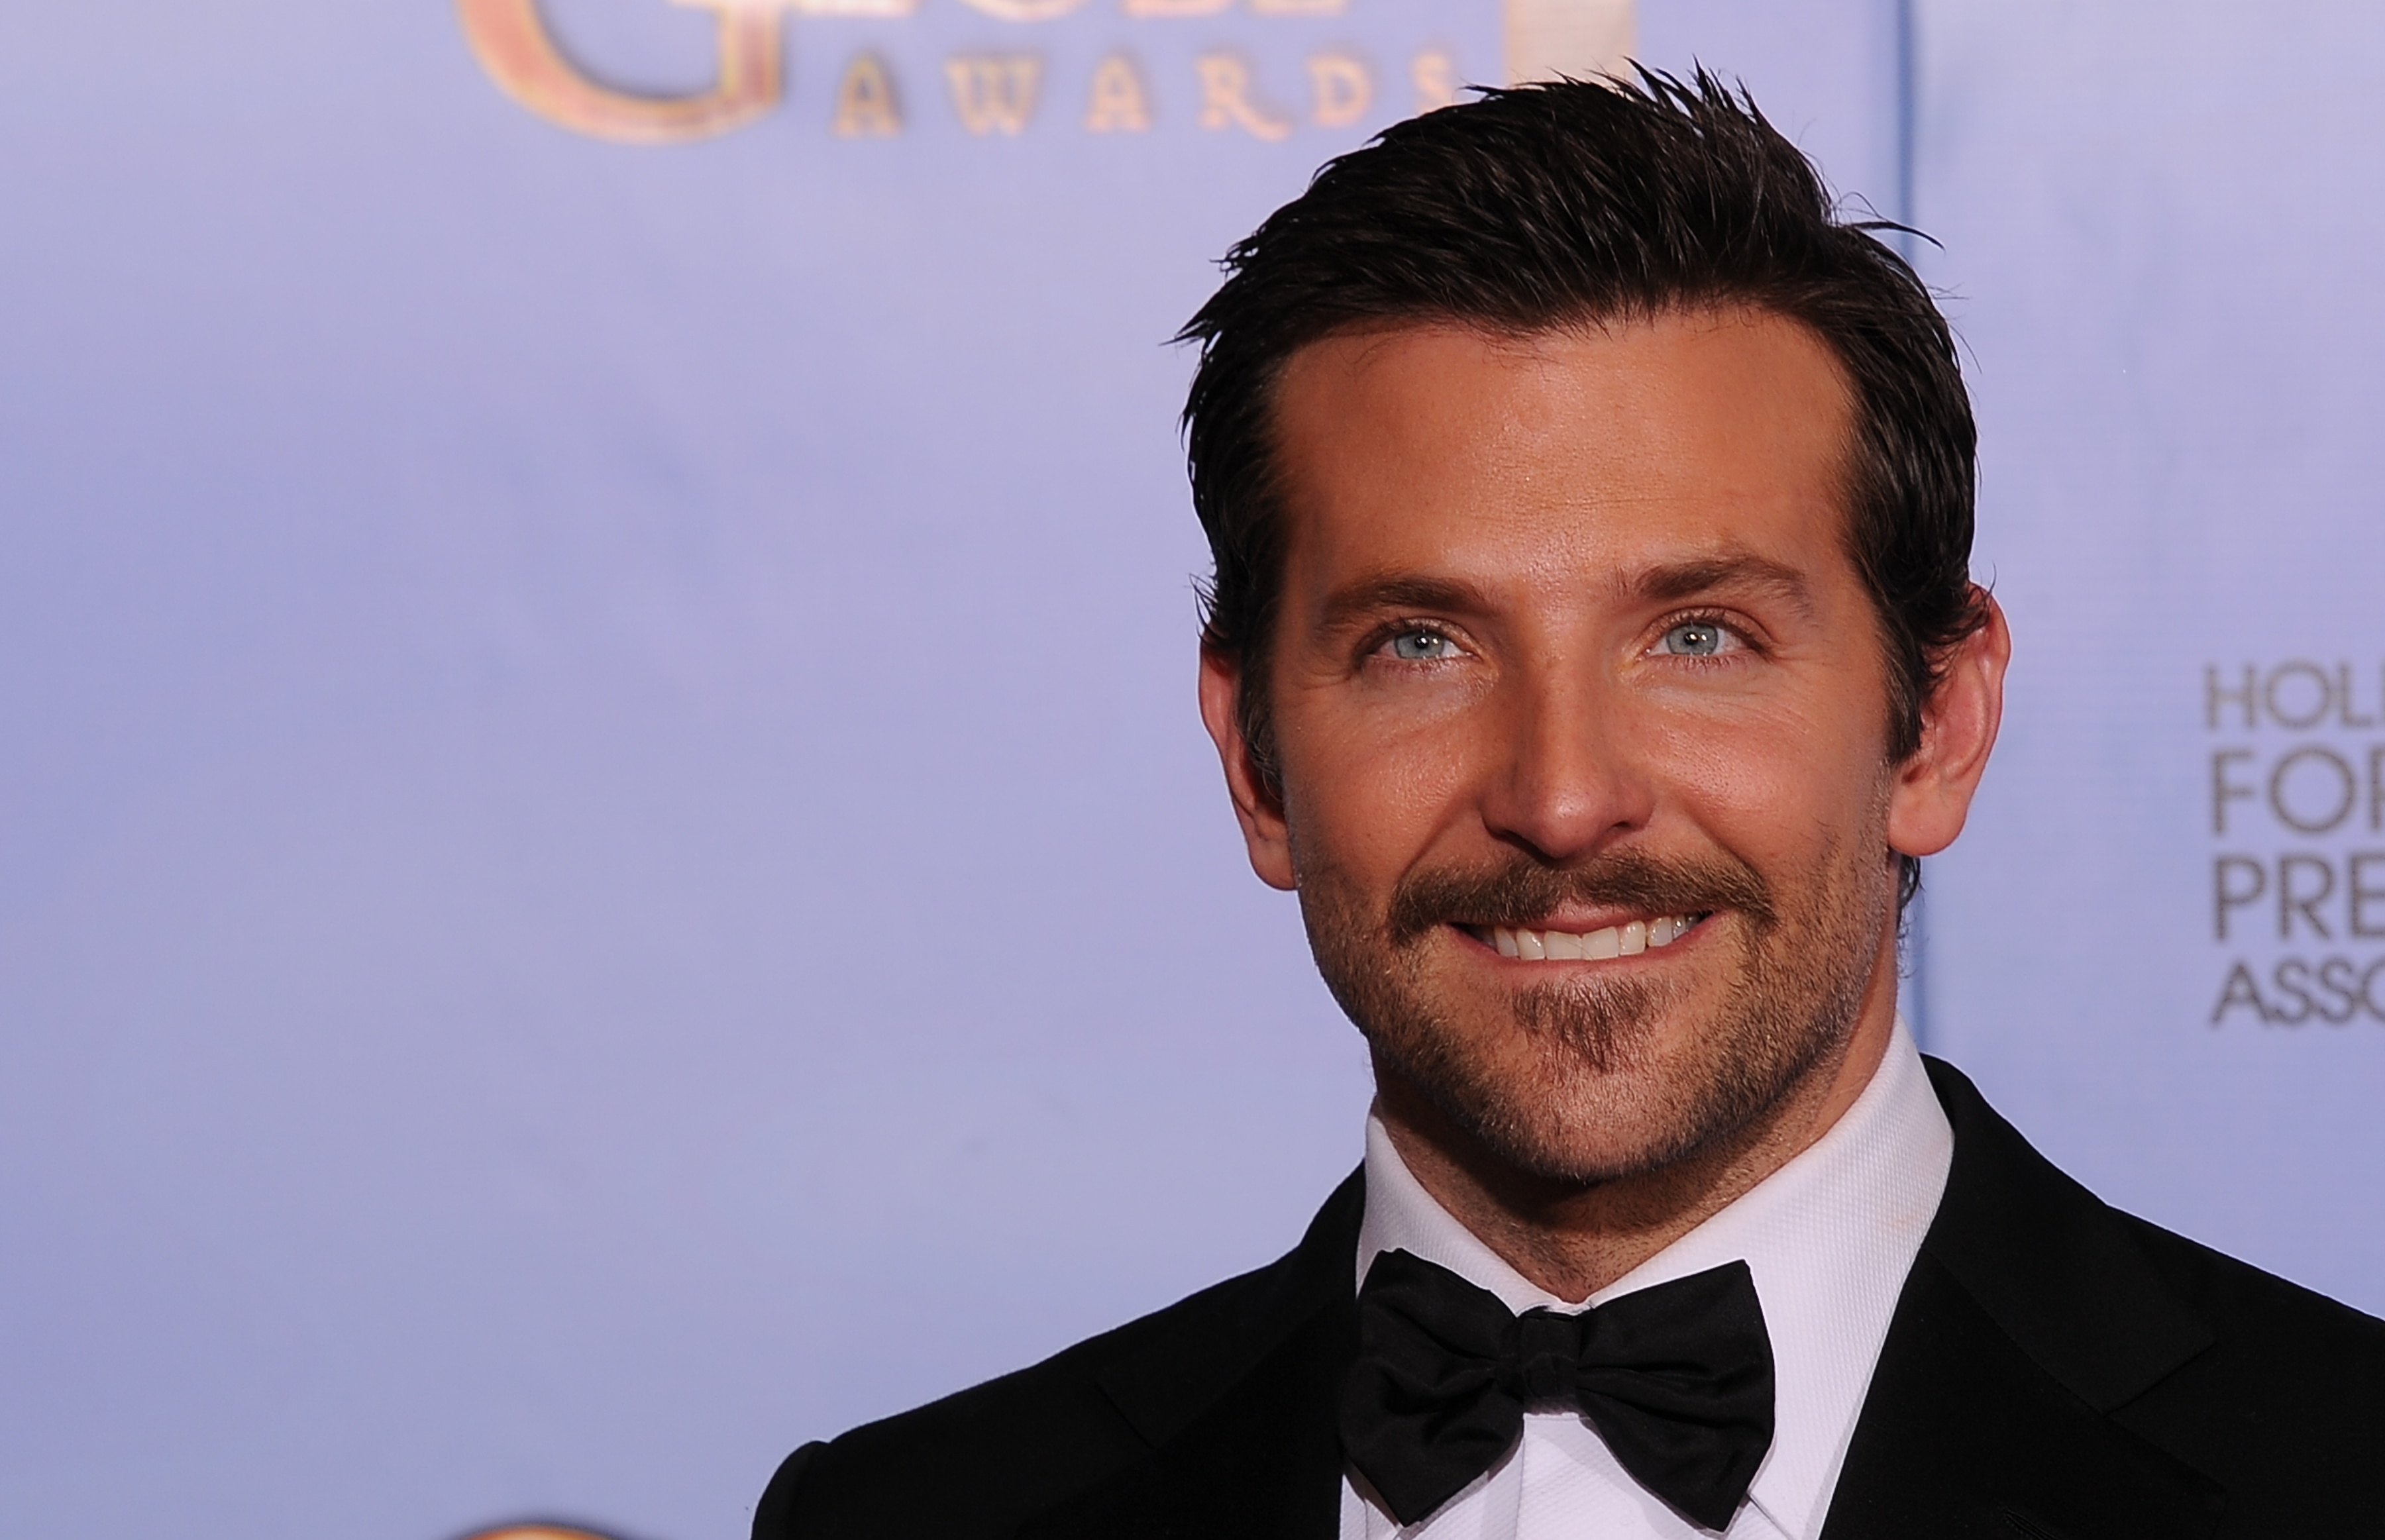 Actor Bradley Cooper poses for the press during the 69th annual Golden Globe Awards at the Beverly Hilton Hotel in Beverly Hills, California, January 15, 2012. (Credit ROBYN BECK/AFP/Getty Images)